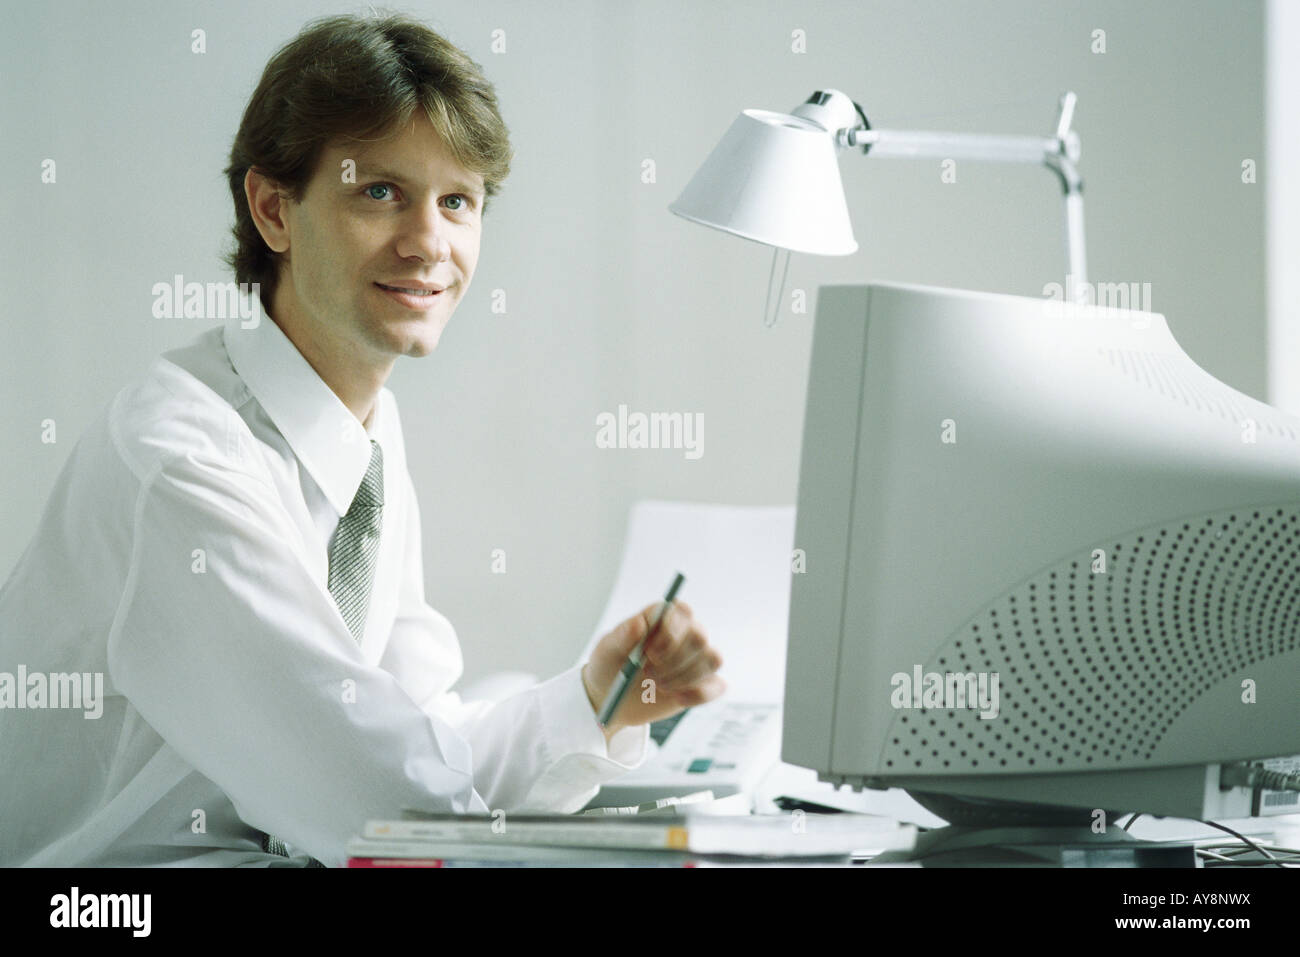 Businessman sitting at desk in front of computer, smiling, looking up - Stock Image